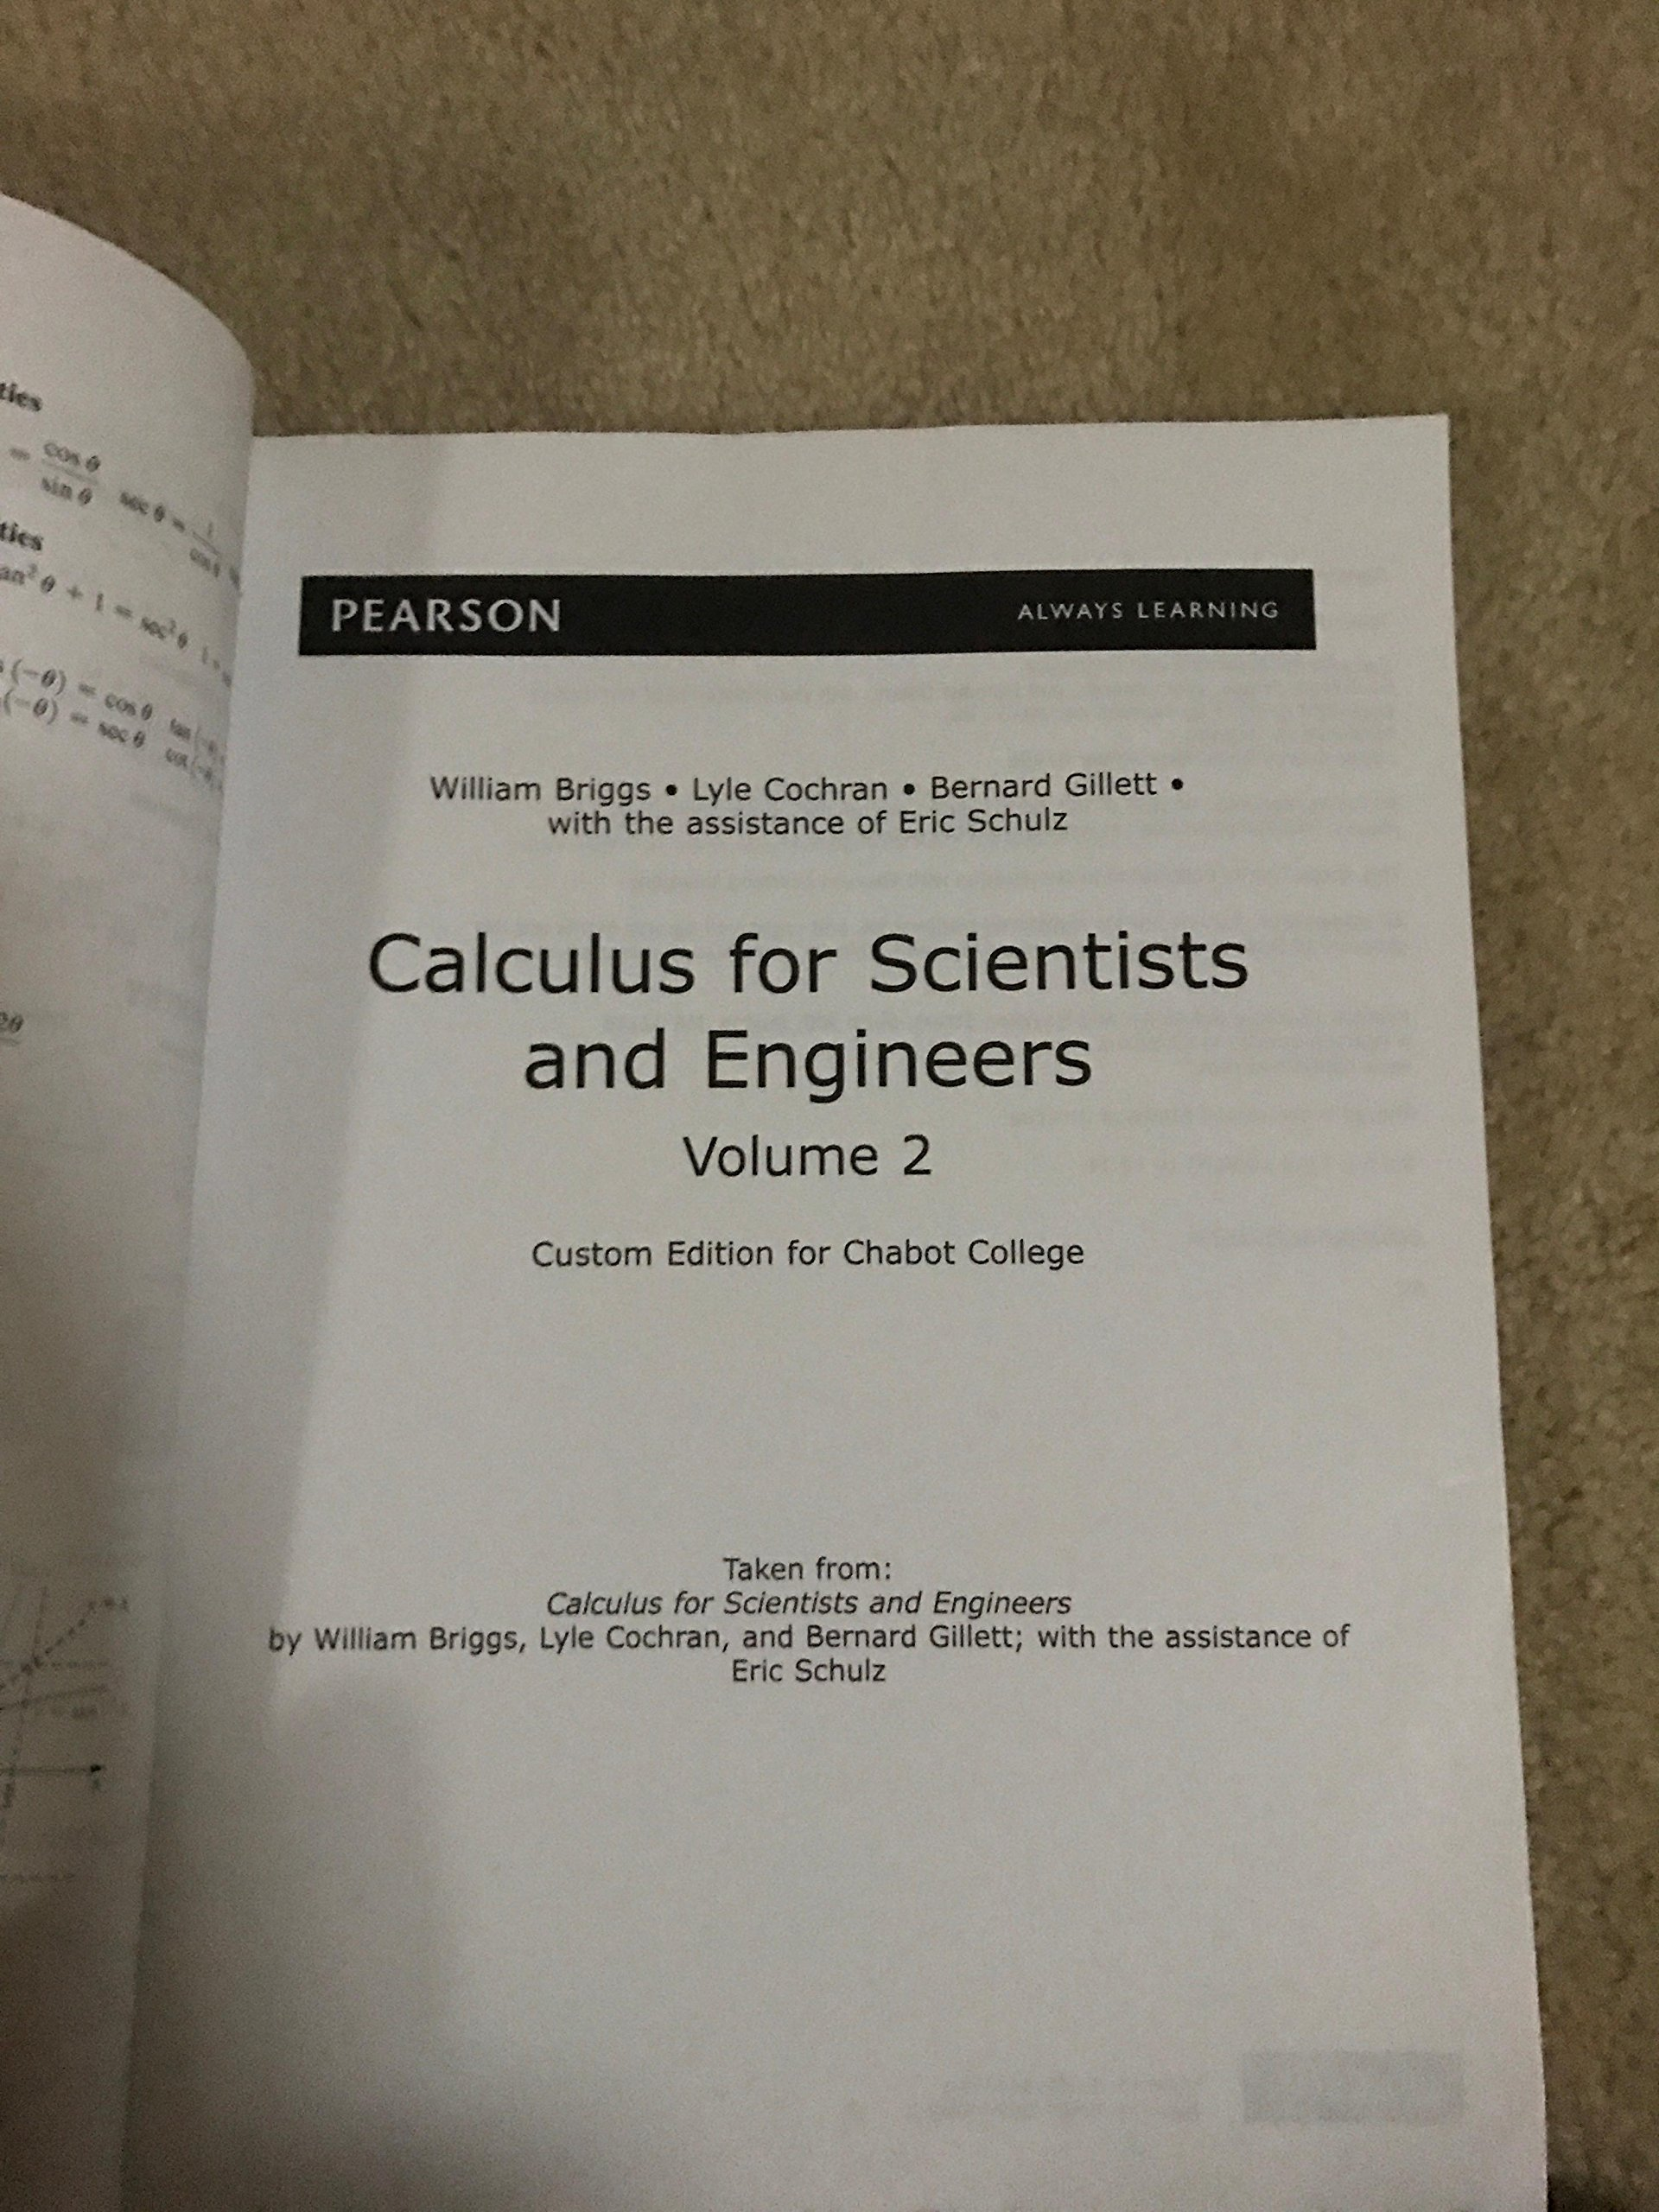 Calculus for Scientists and Engineers volume 2 custom edition for chabot  college: Briggs, Cochran, Gillett: 9781269447492: Amazon.com: Books